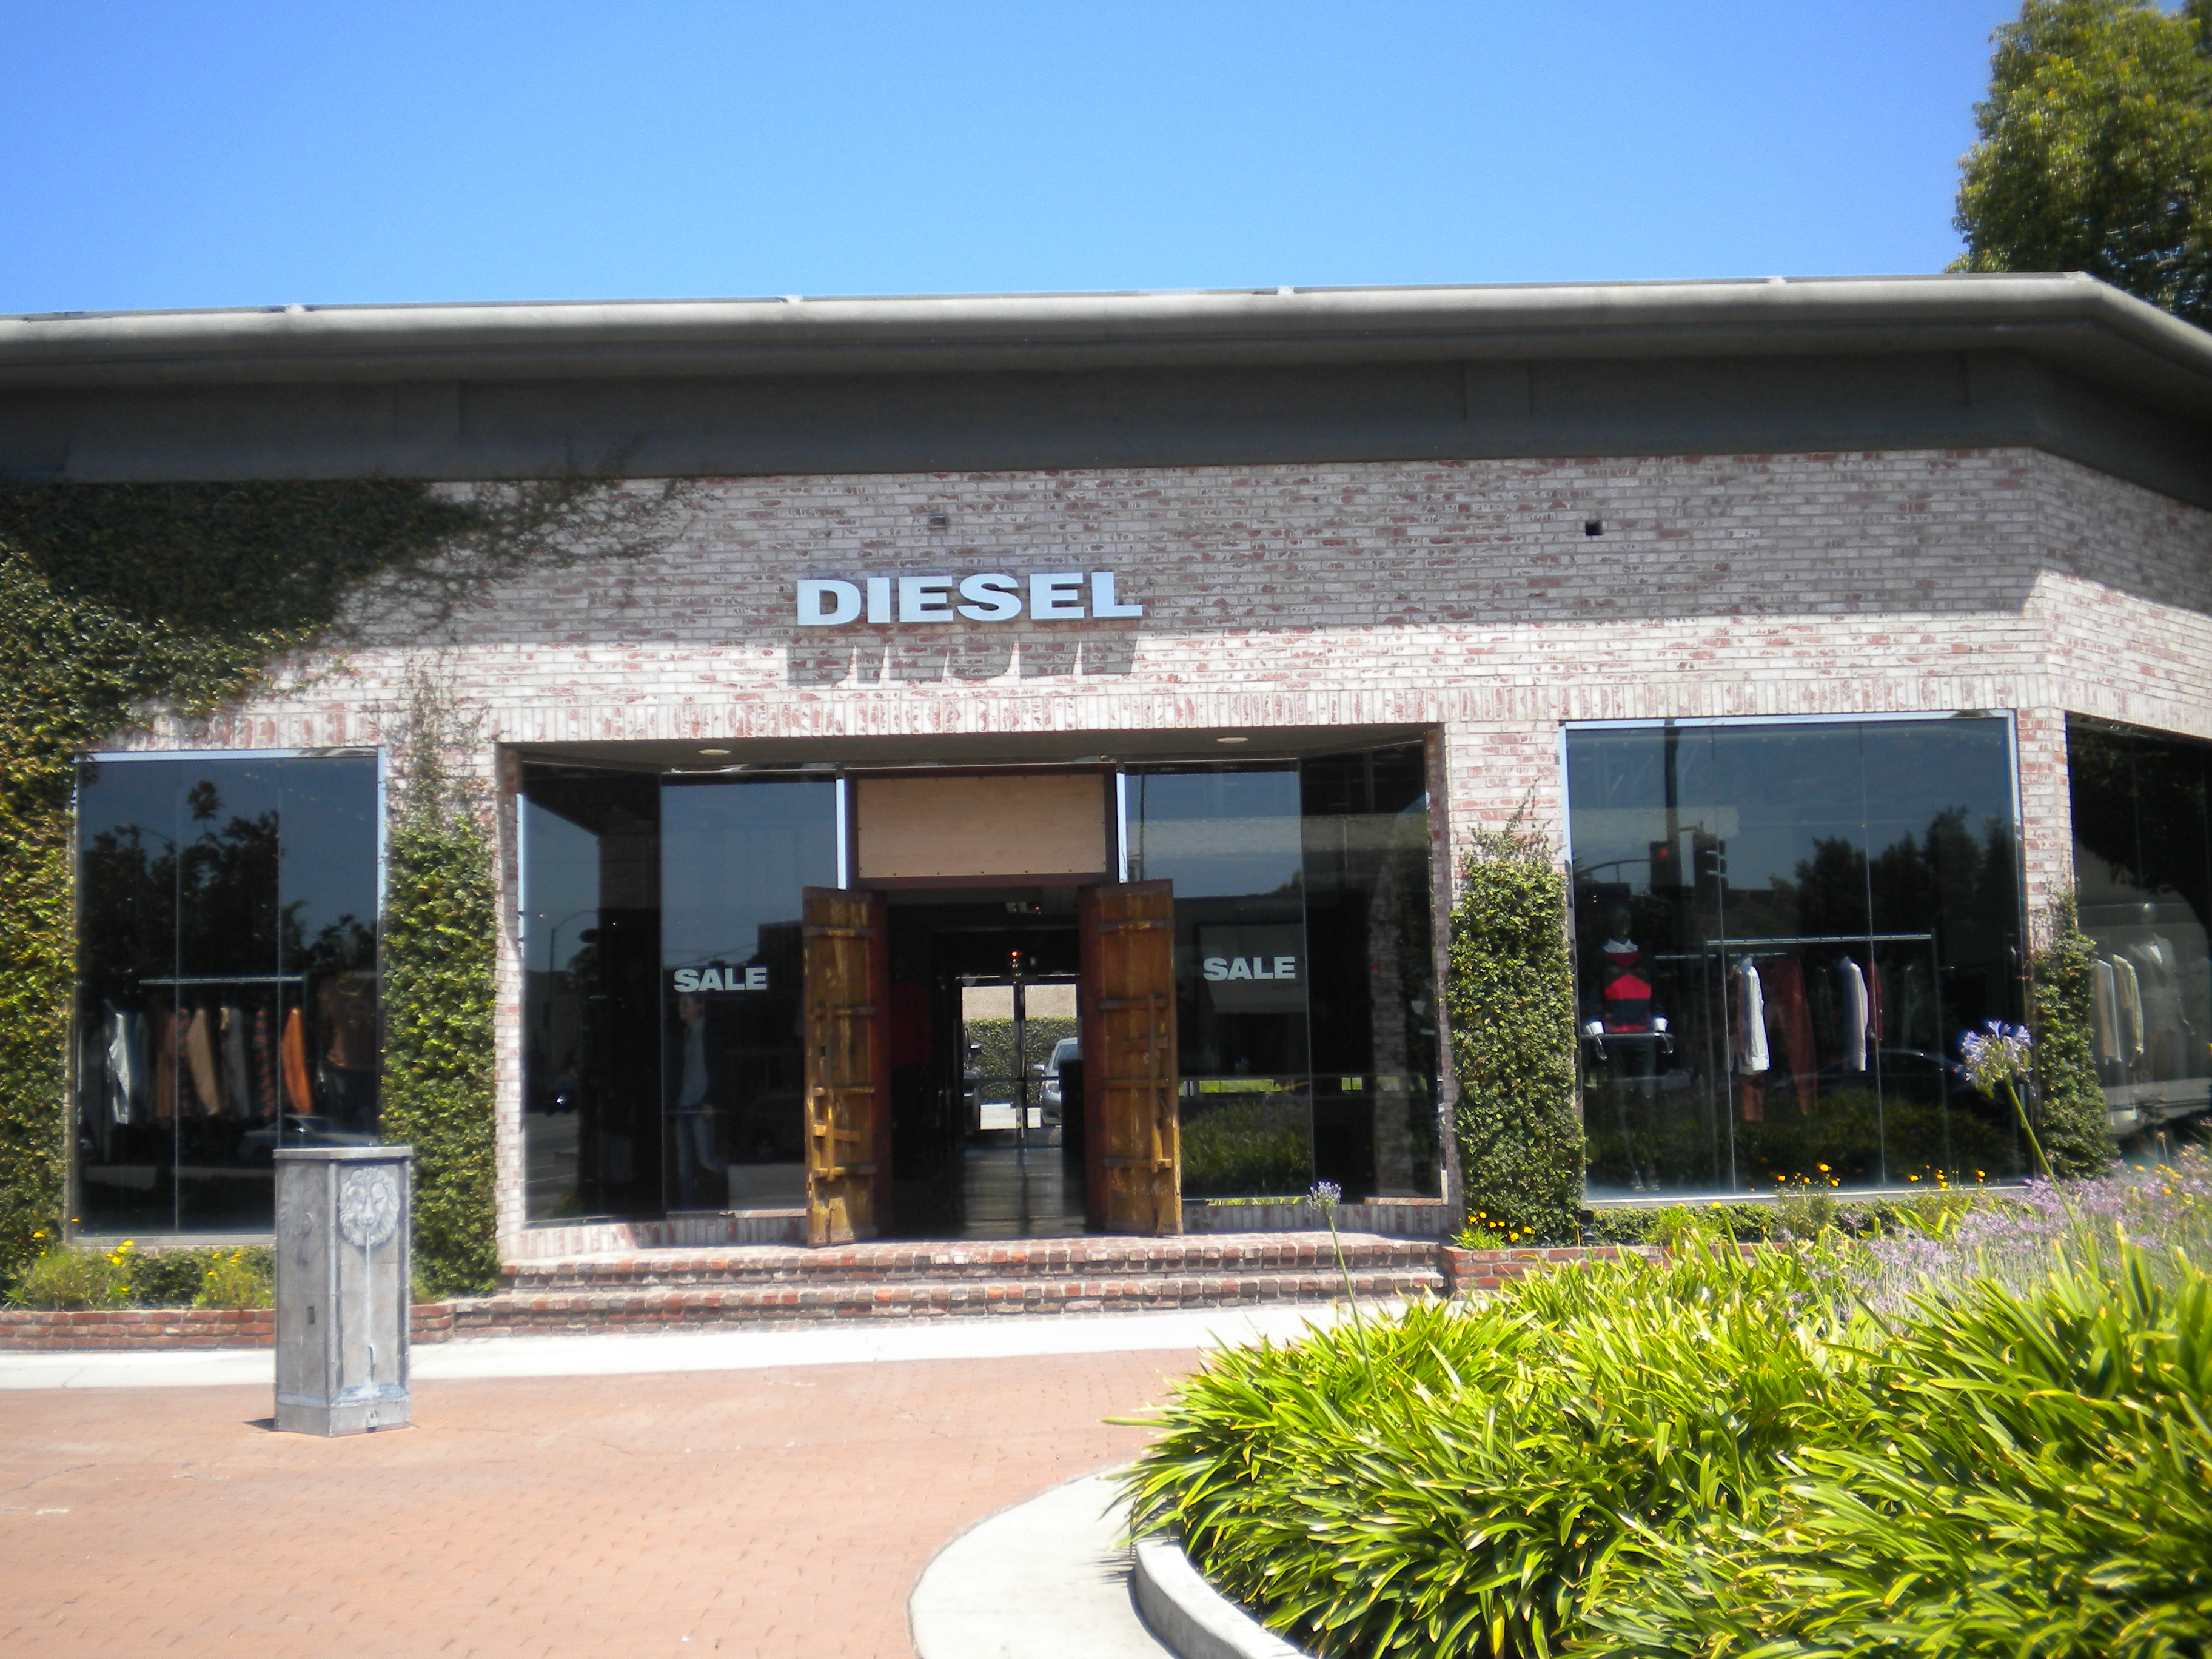 Diesel en Melrose Ave. Los Angeles